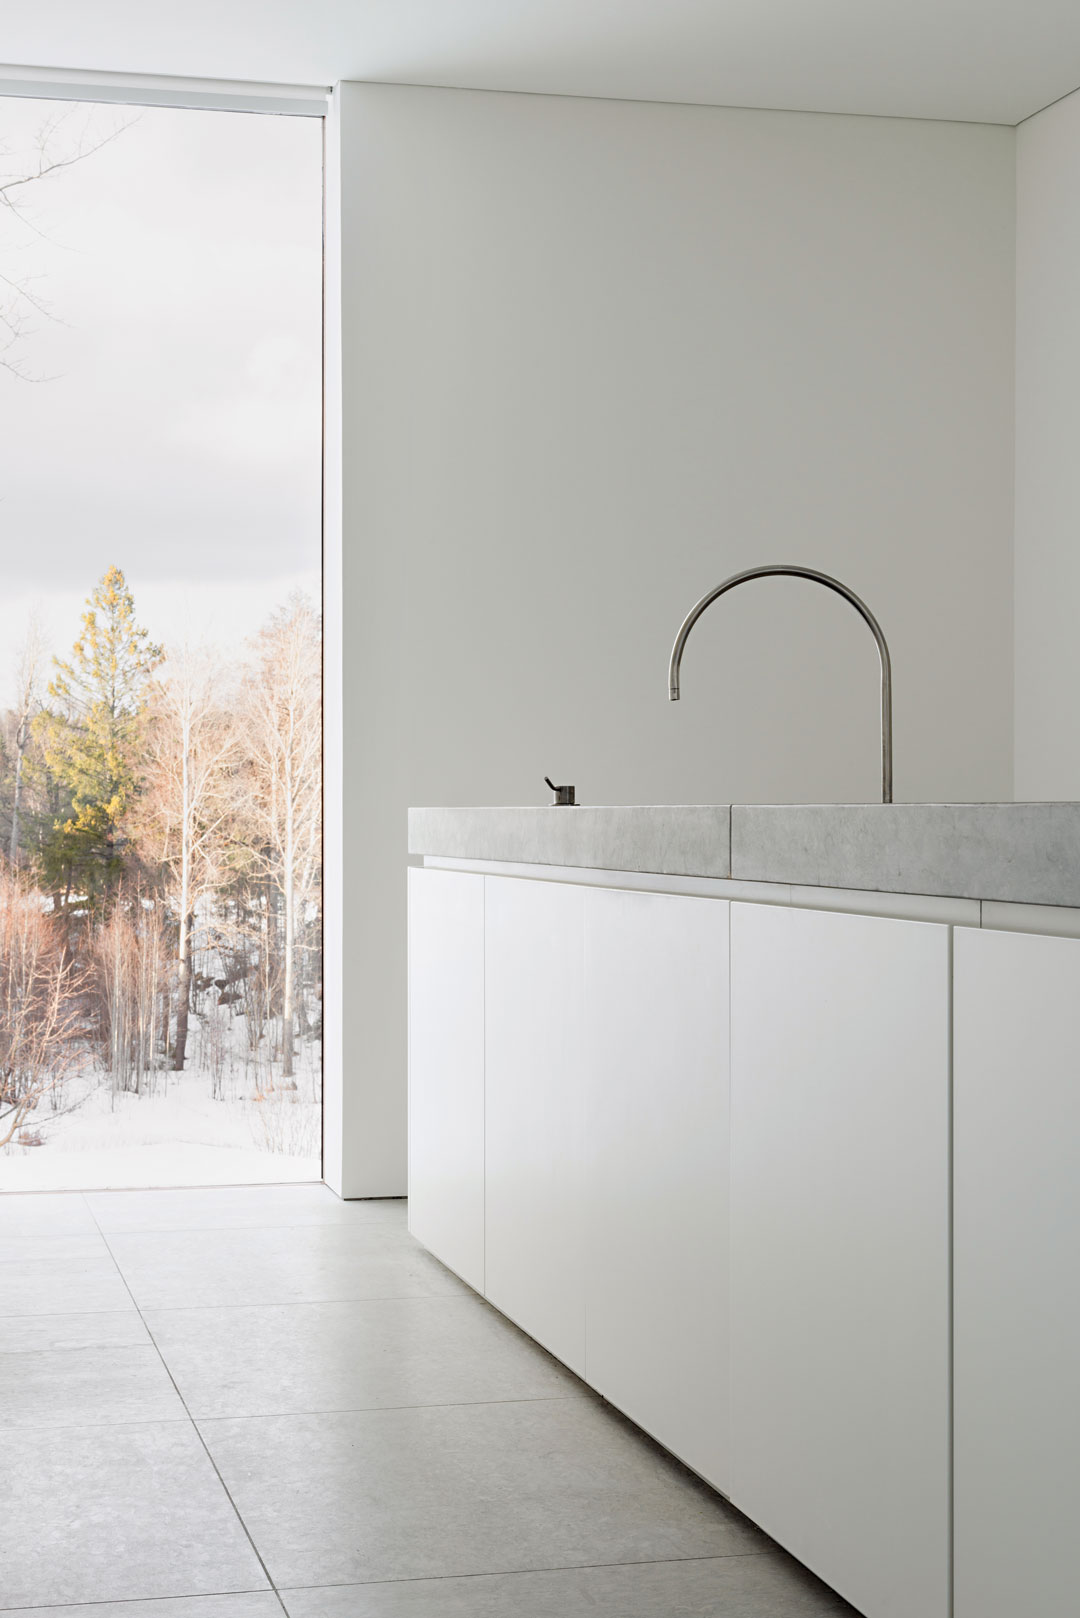 The Palmgren House, Sweden, by John Pawson